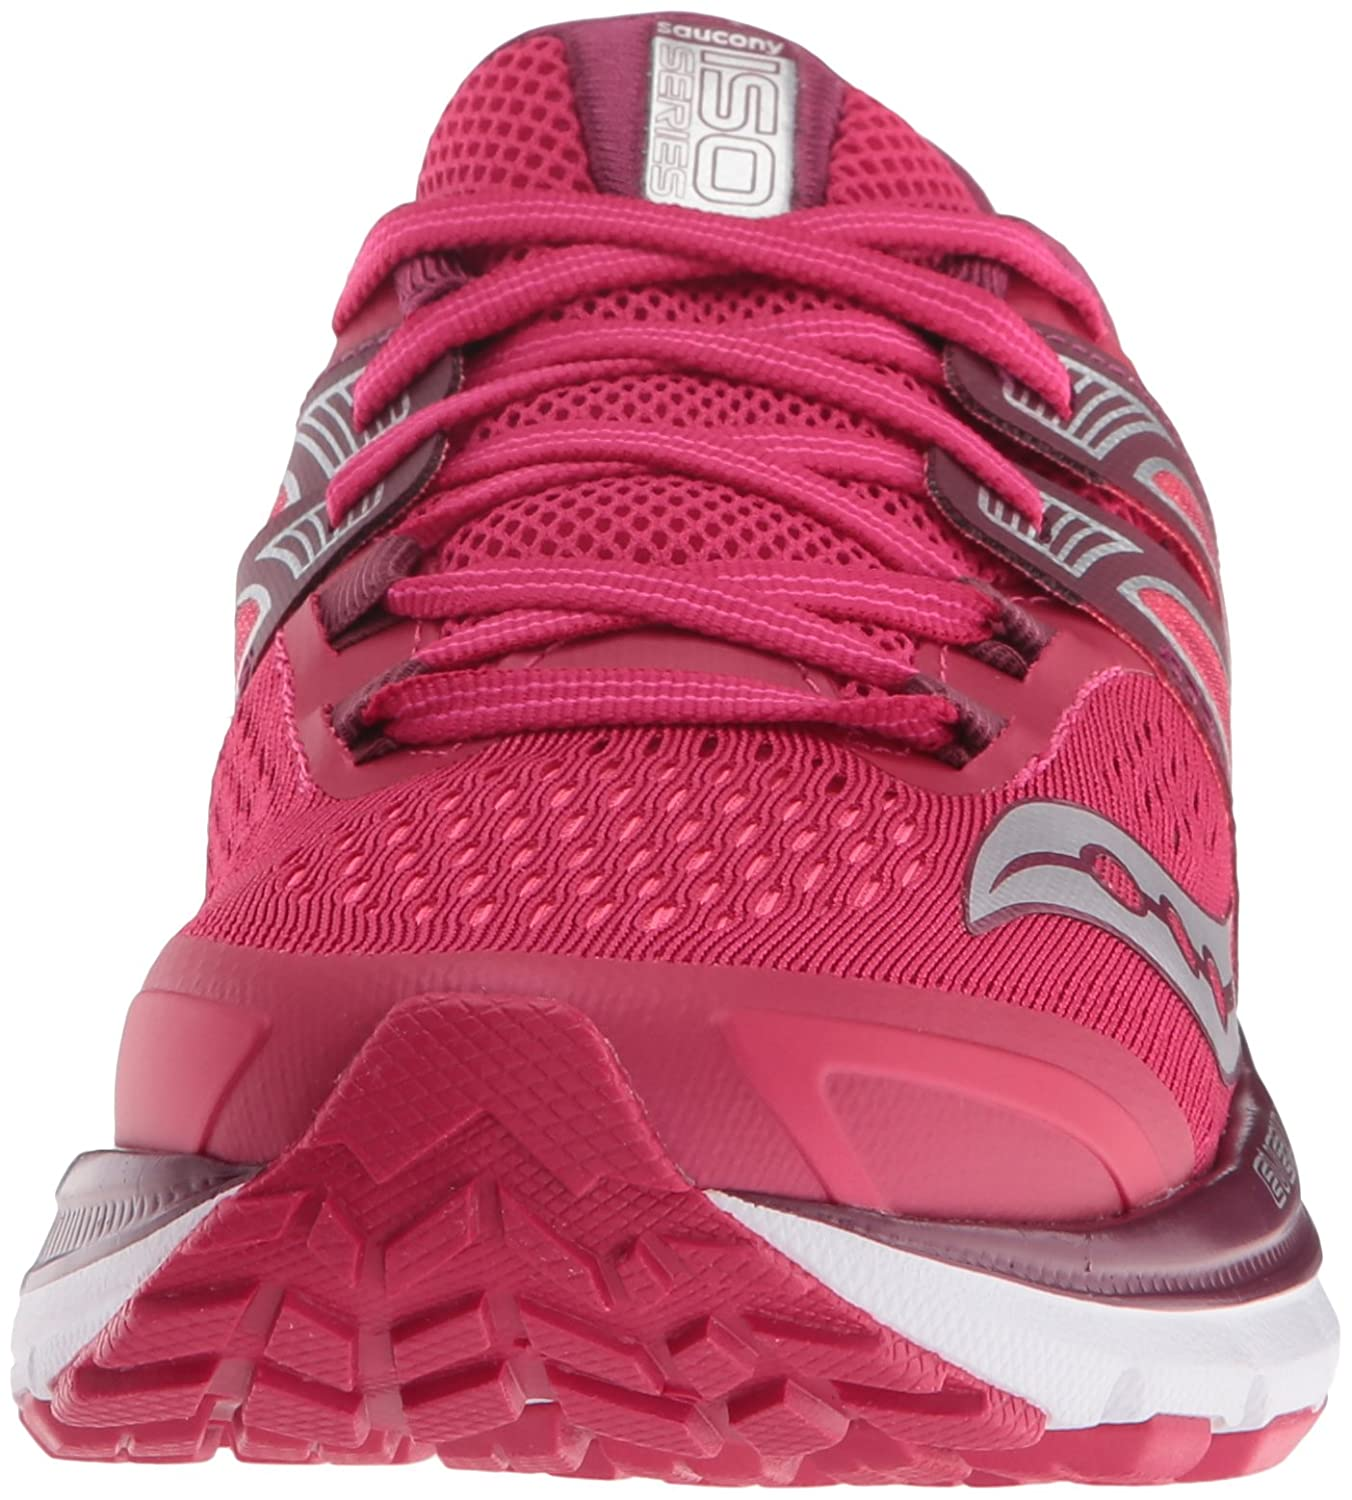 Saucony Women's Triumph Iso B(M) 3 Running Sneaker B01GILHUZC 10.5 B(M) Iso US|Pink/Berry/Silver c7c661